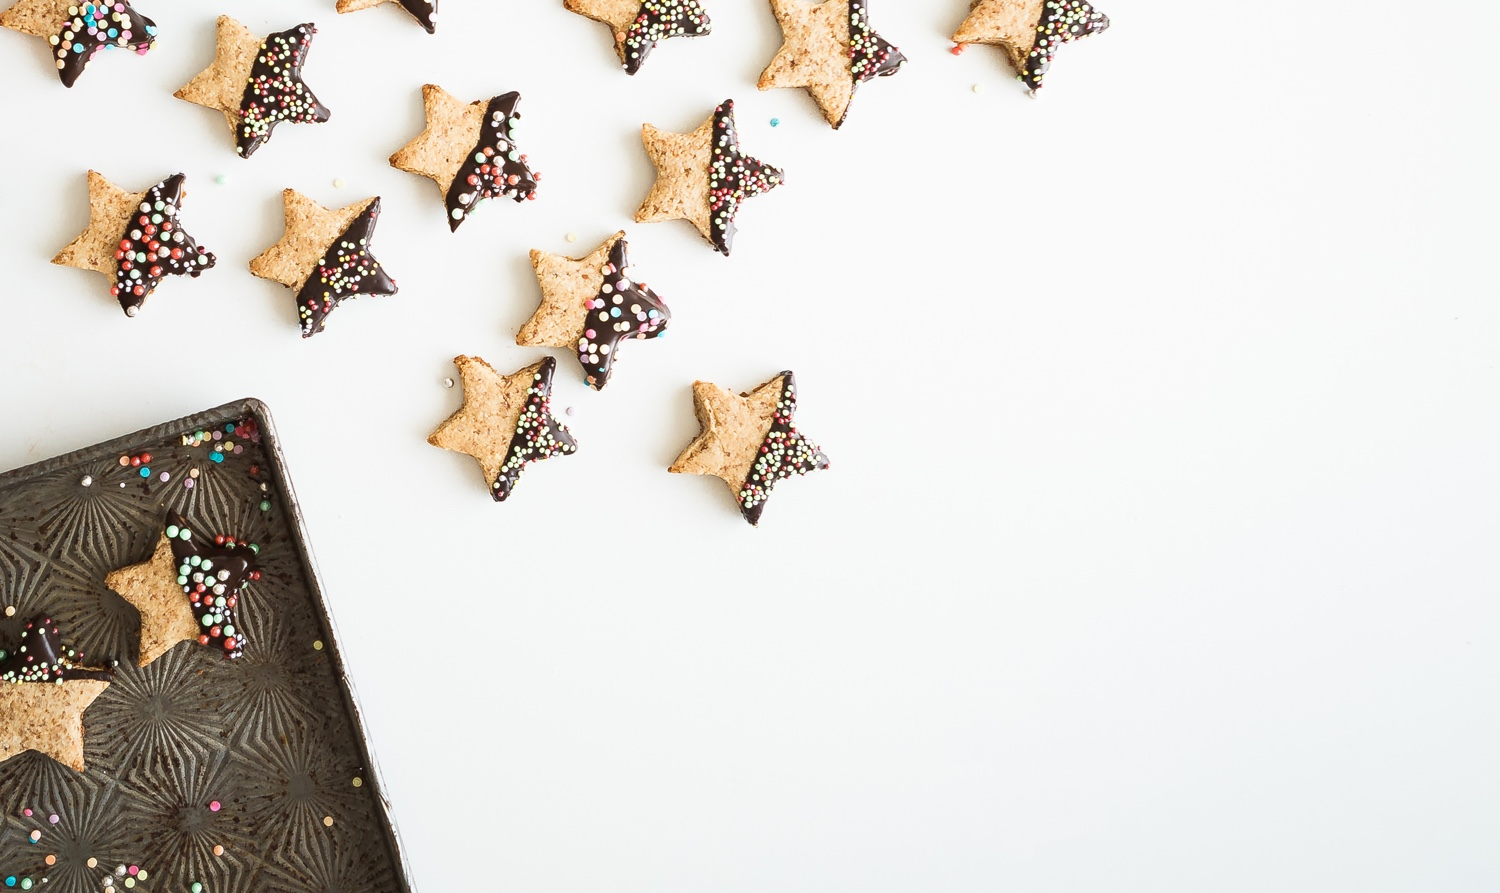 Navigating food, weight and body image issues, diet talk and intuitive eating during the Holidays | Brownble